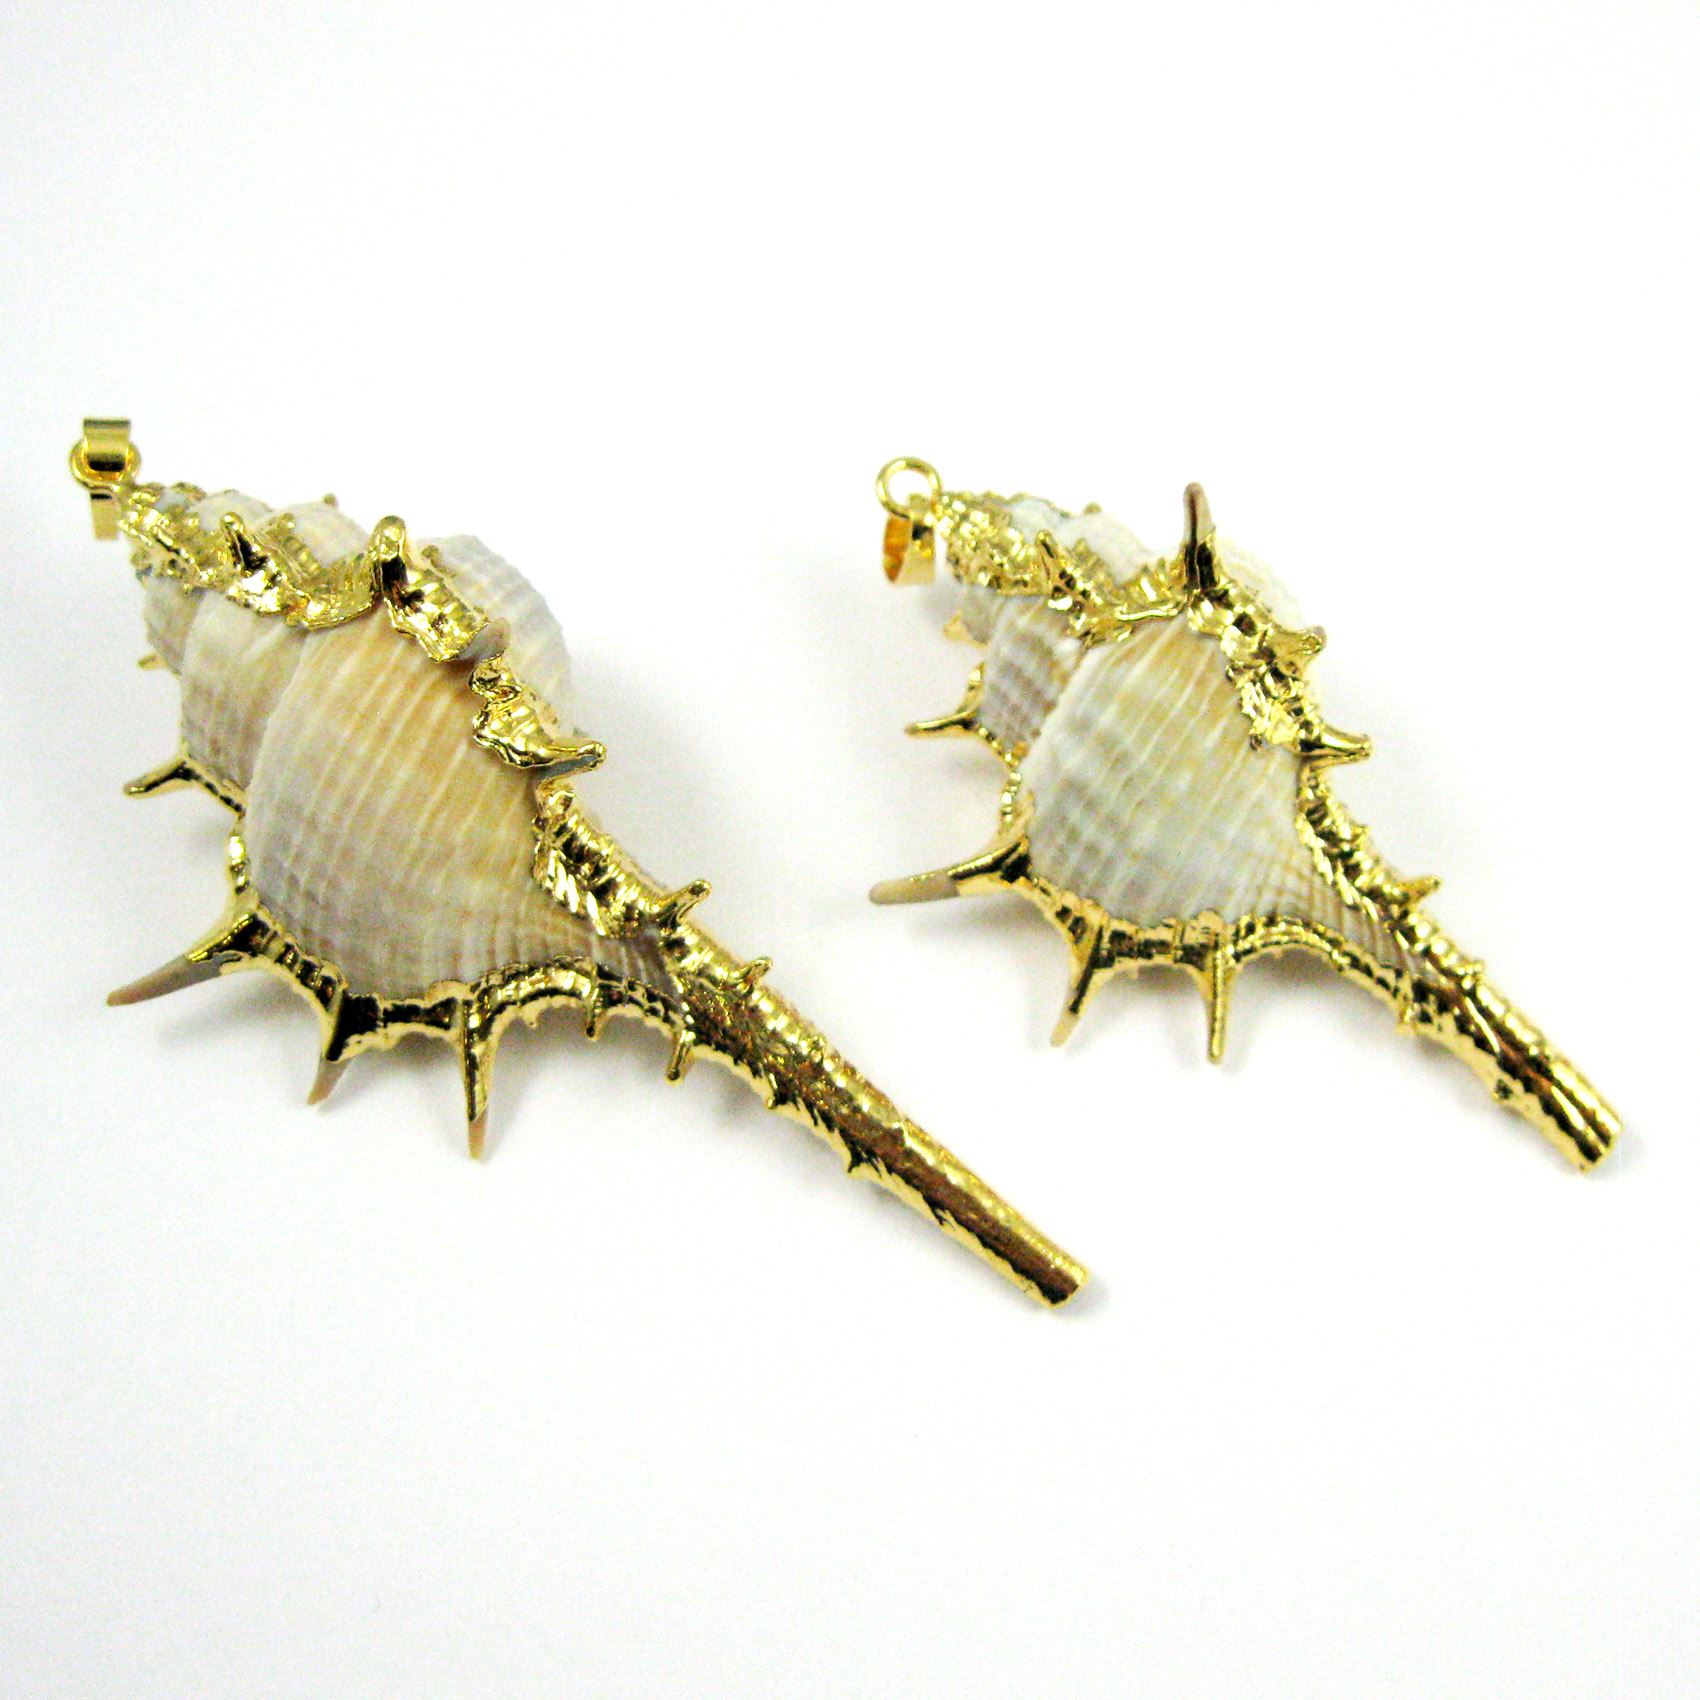 Shell Pendant,Natural Cabrits Murex Pendant, Gold wrapped Shell Pendant, Large Spike Pendant